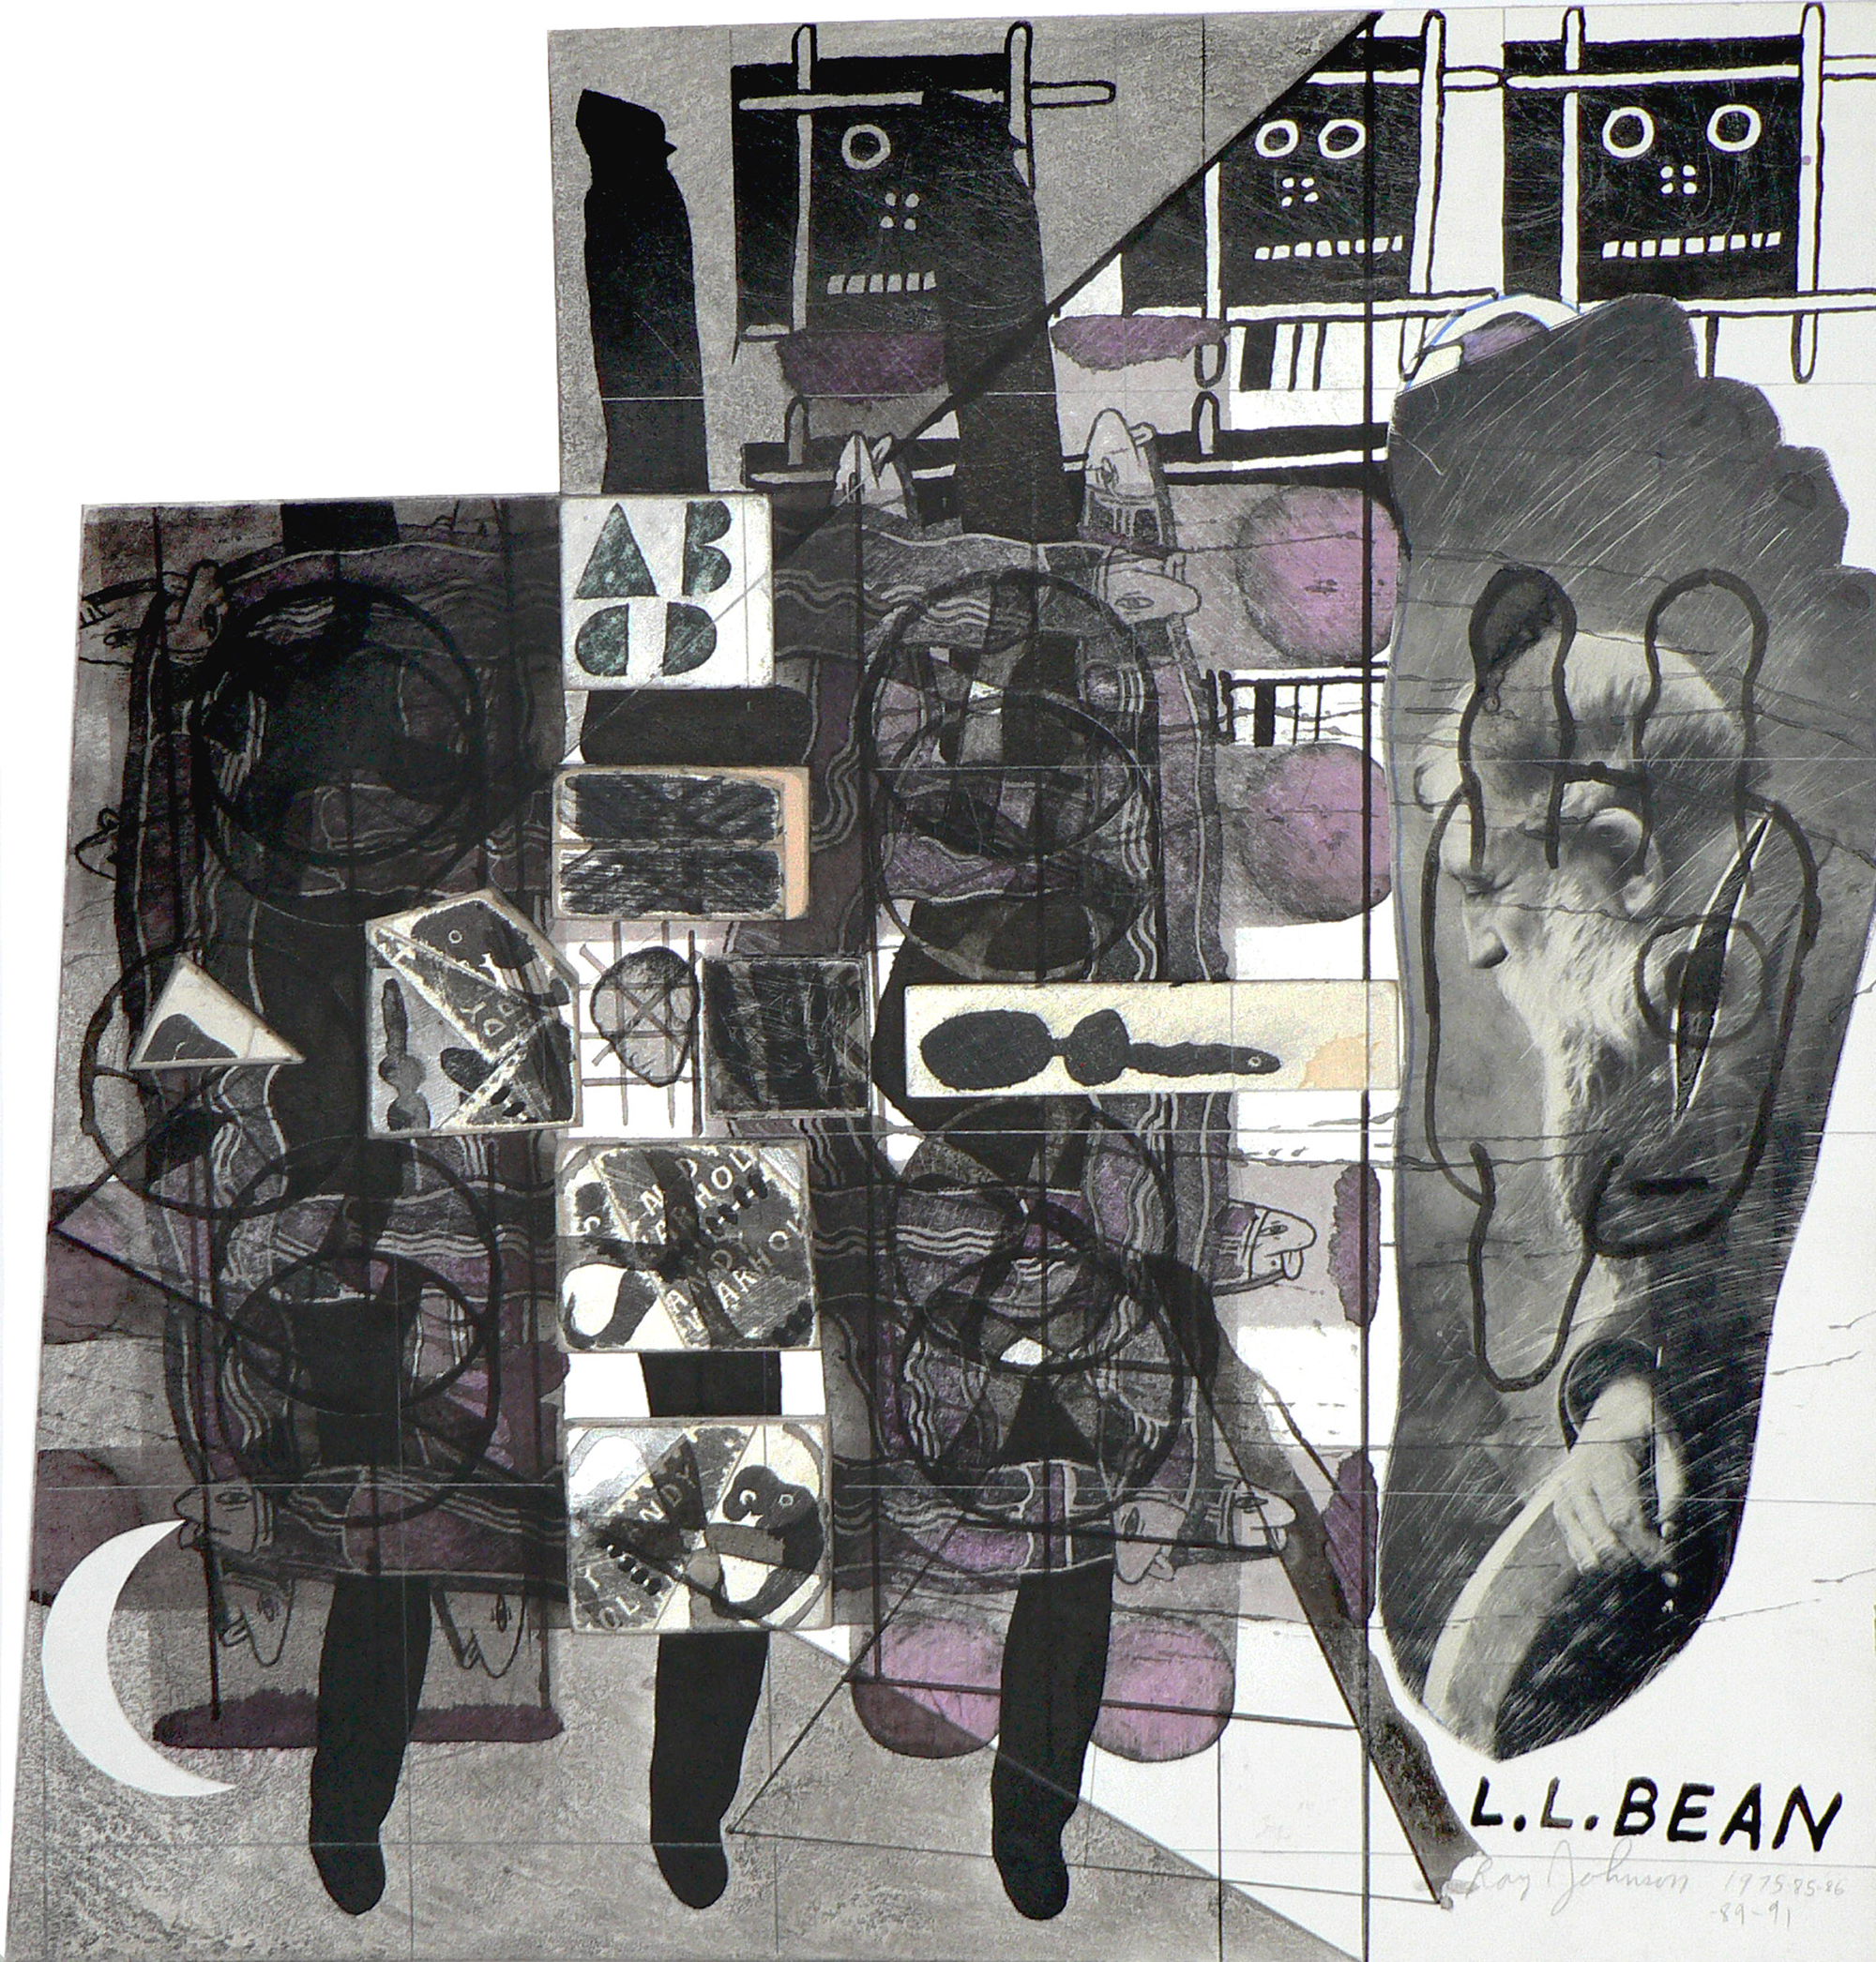 Ray Johnson Untitled (L.L. Bean) (Detail), 1975-1991 Collage on illustration board © Ray Johnson Estate, Courtesy Richard L. Feigen & Co.Ray Johnson